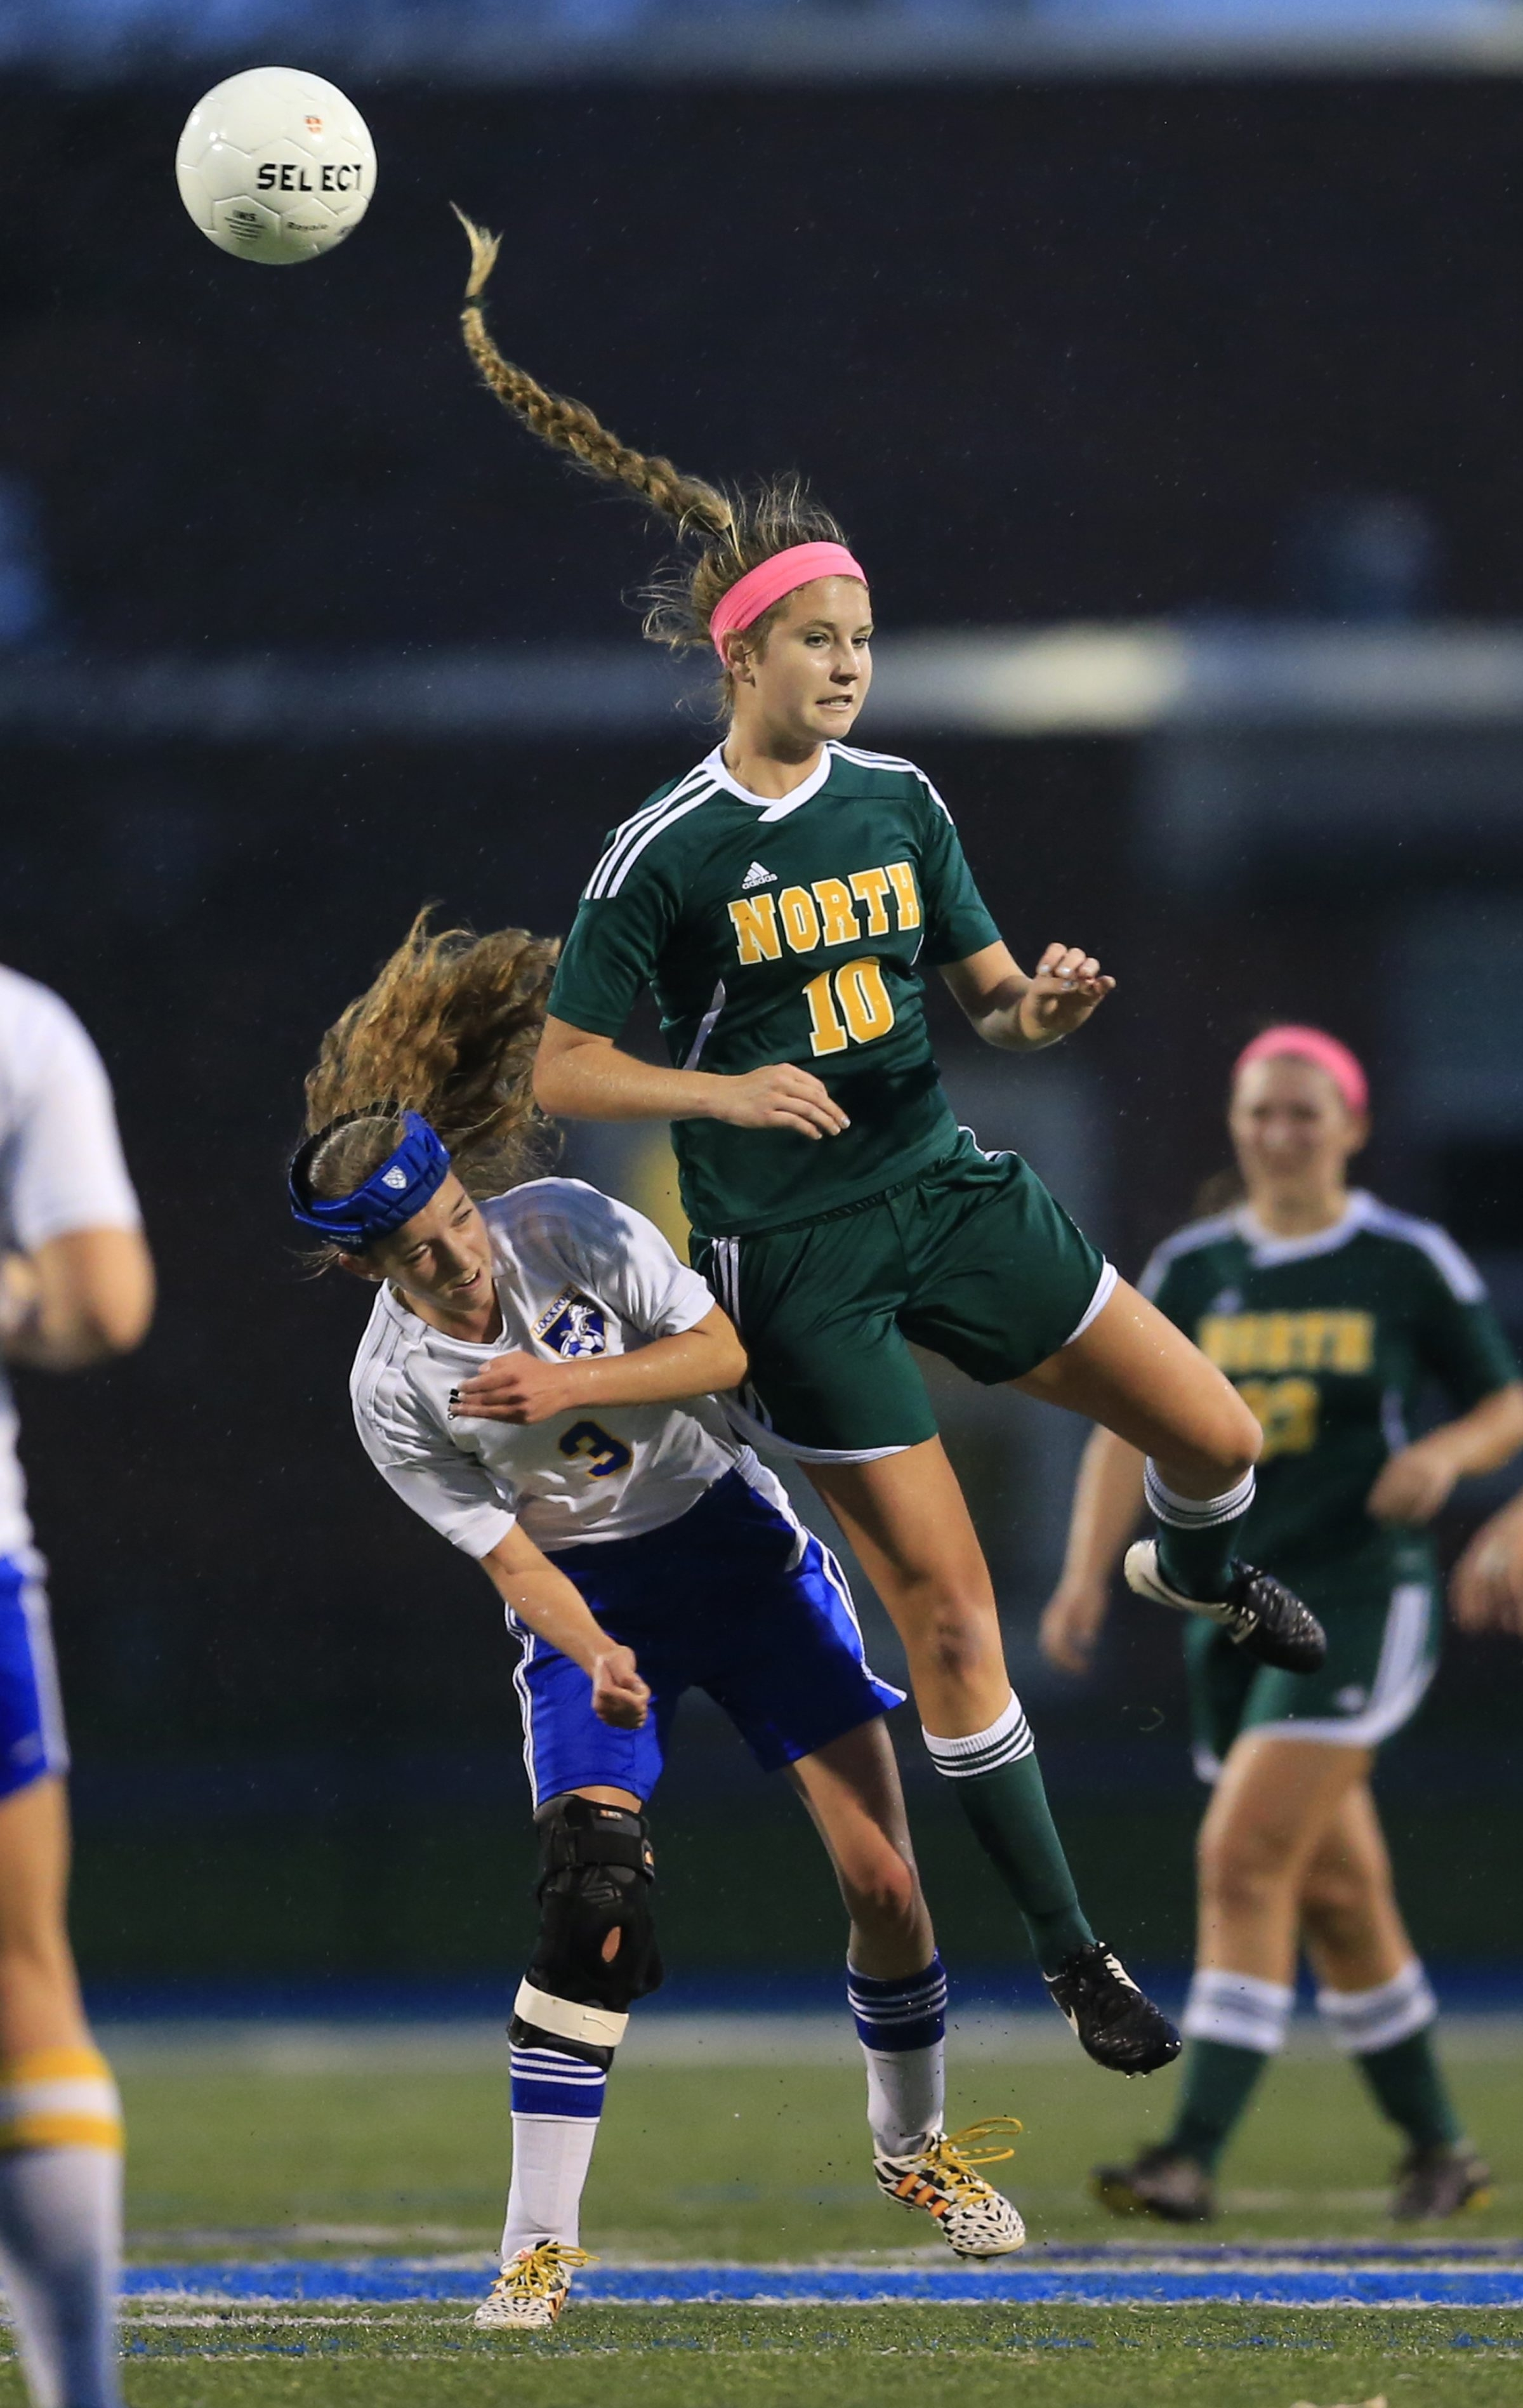 Williamsville North's Hanny Podgurski (10) and Lockport's Sage Donovan go for the ball during Tuesday's Class AA semifinal game won by the Spartans, 1-0.